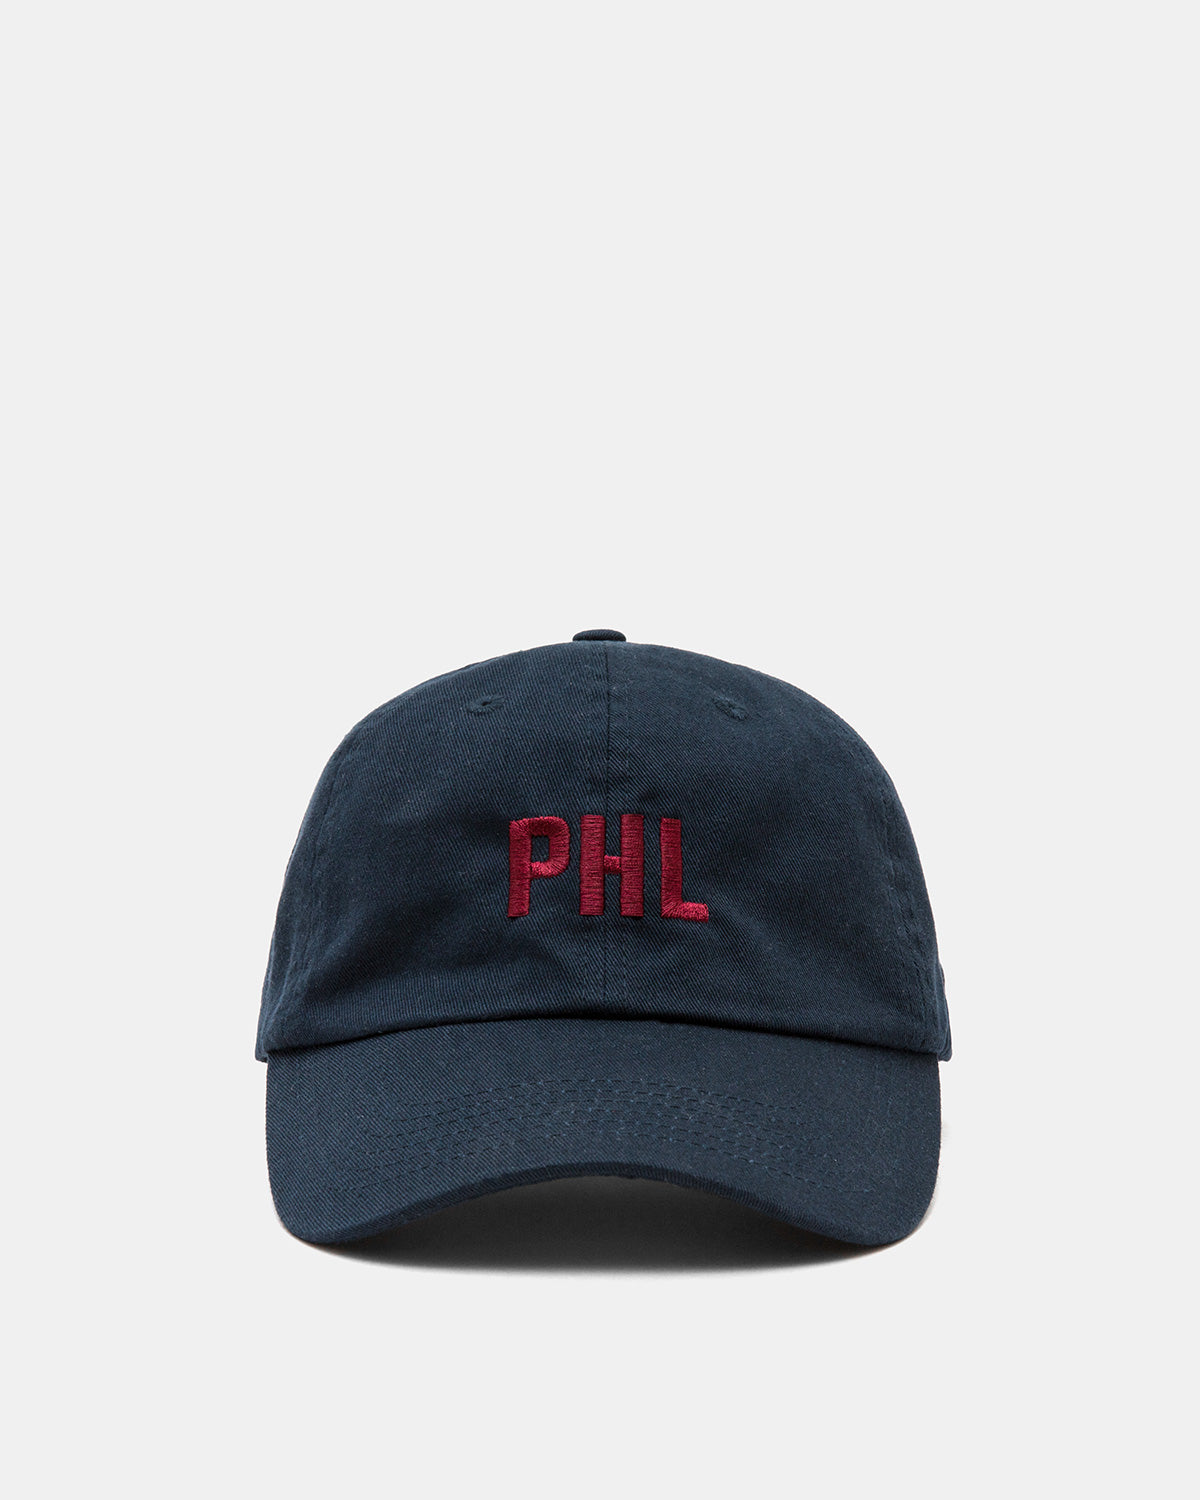 UBIQ - PHL Hat (Navy | Red)